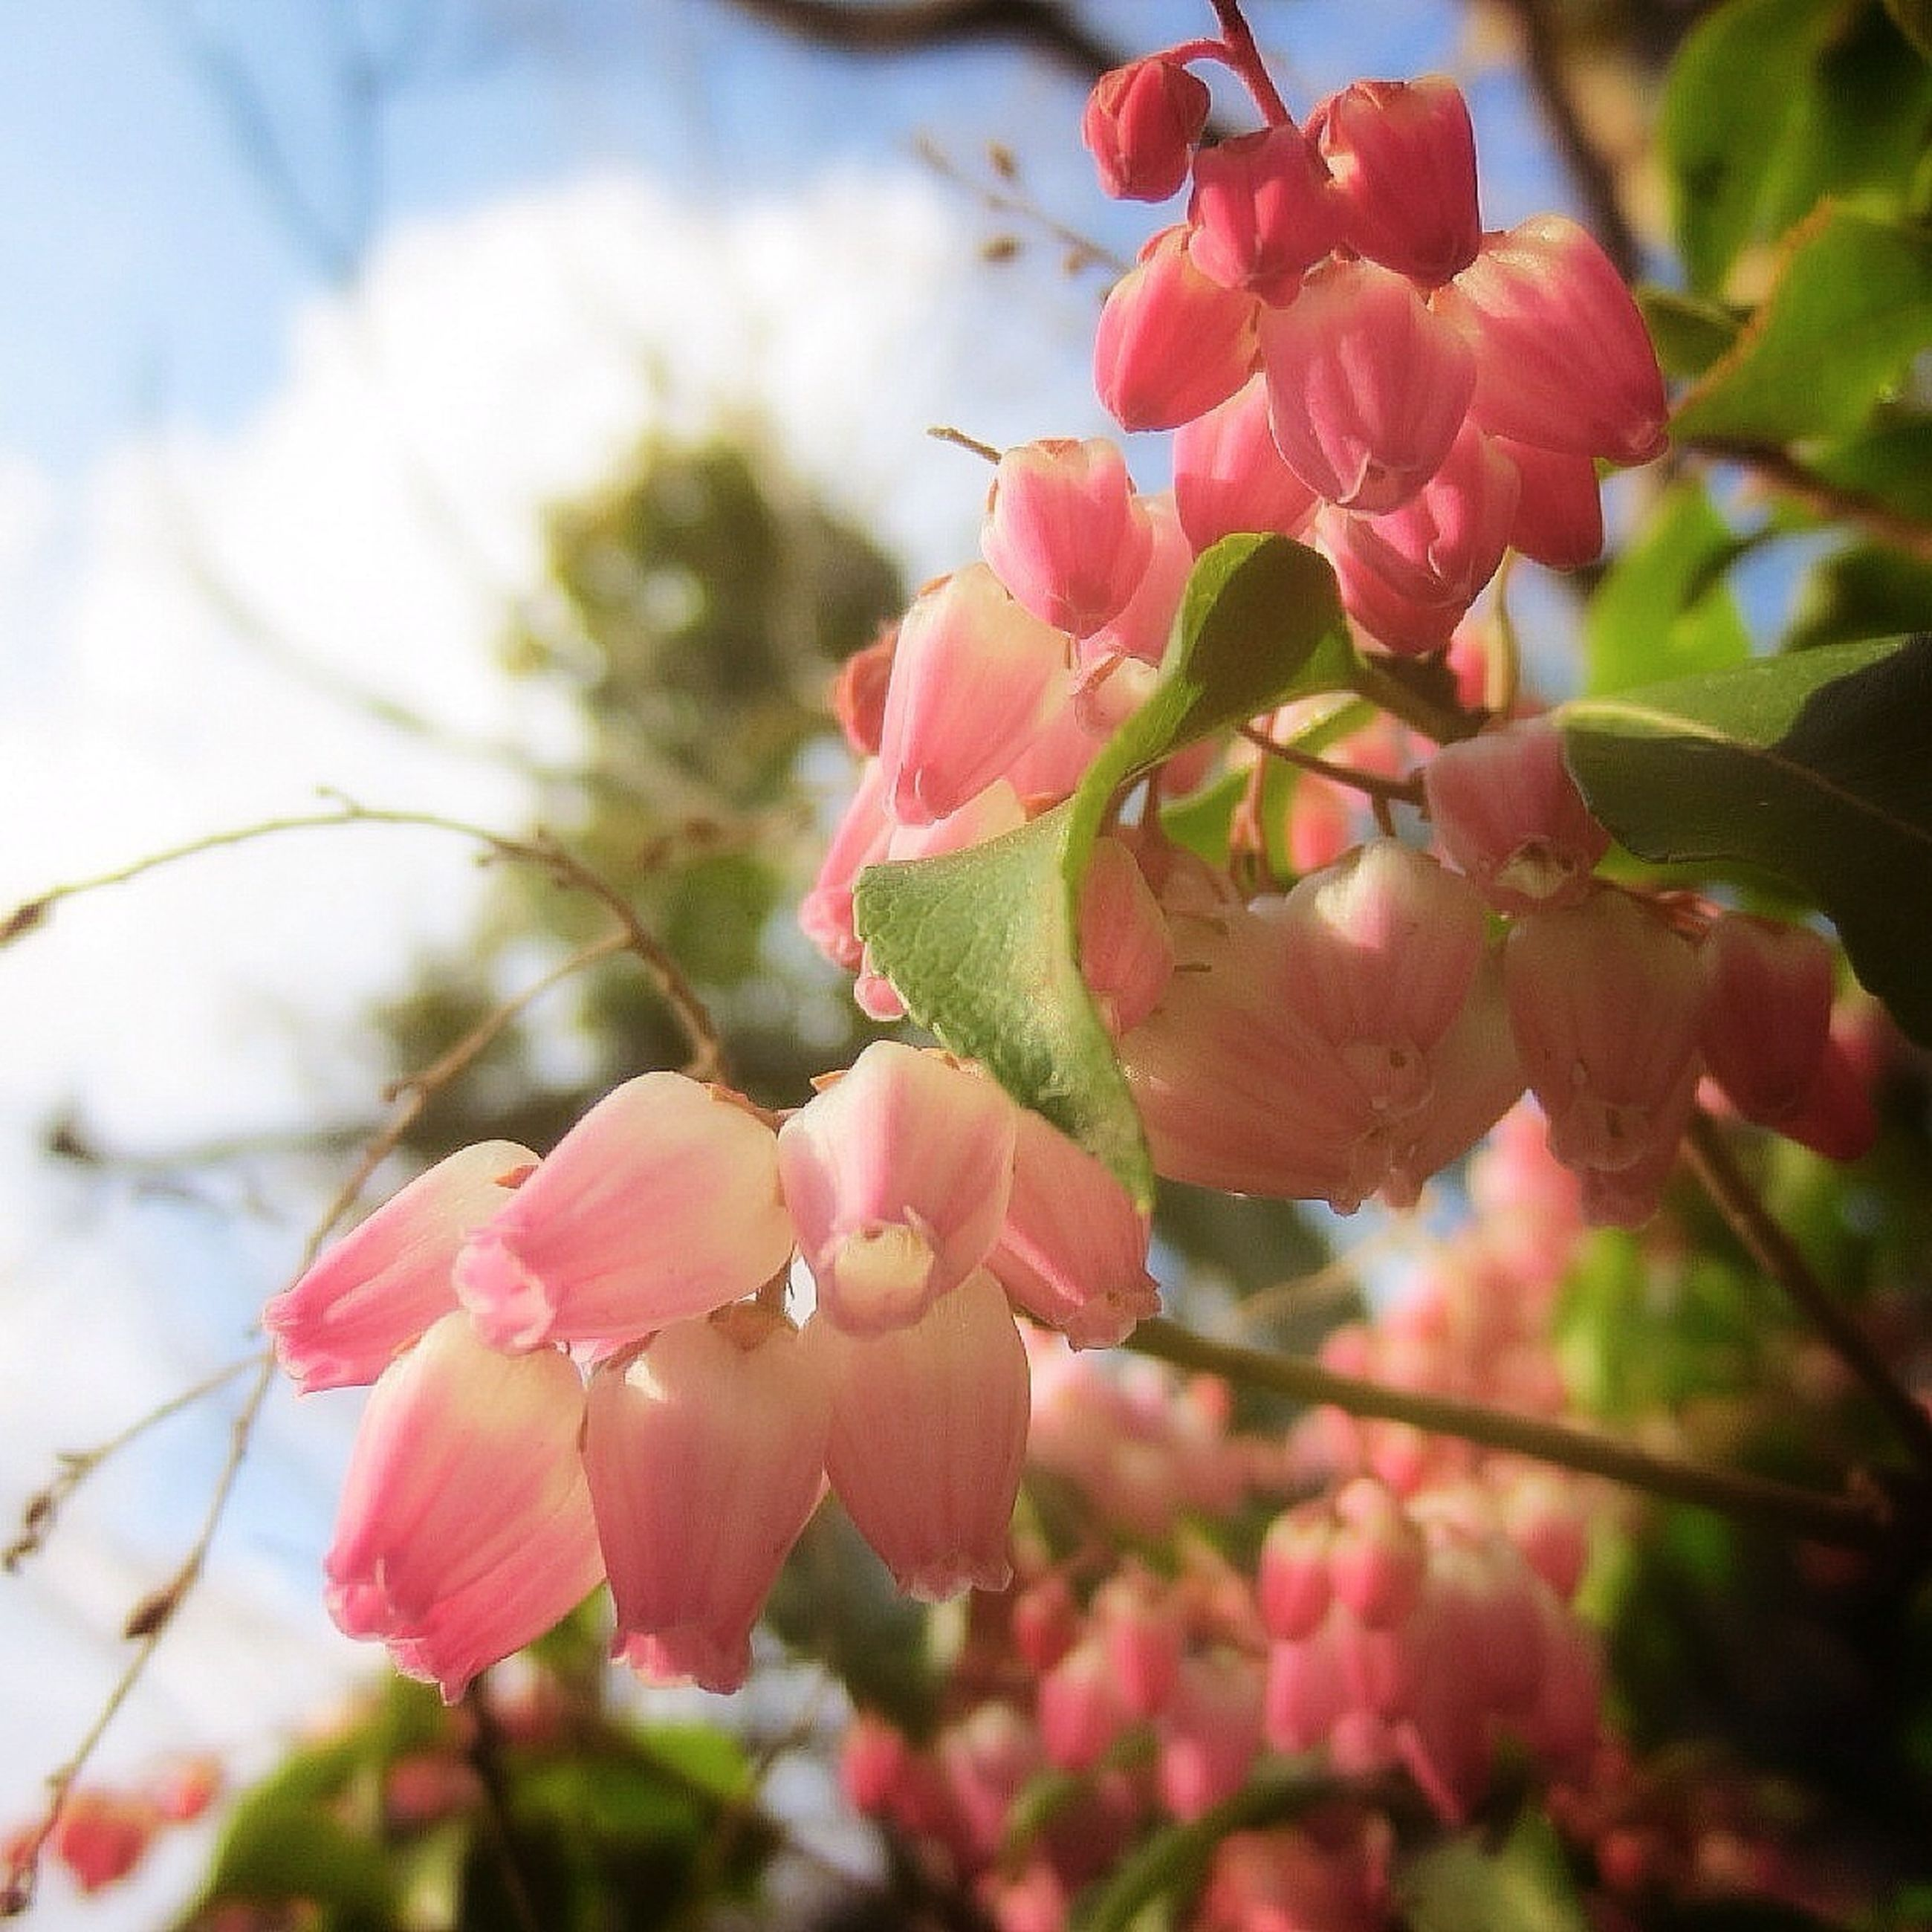 flower, freshness, branch, growth, tree, fragility, pink color, focus on foreground, beauty in nature, nature, close-up, cherry tree, twig, cherry blossom, blossom, fruit tree, petal, springtime, orchard, in bloom